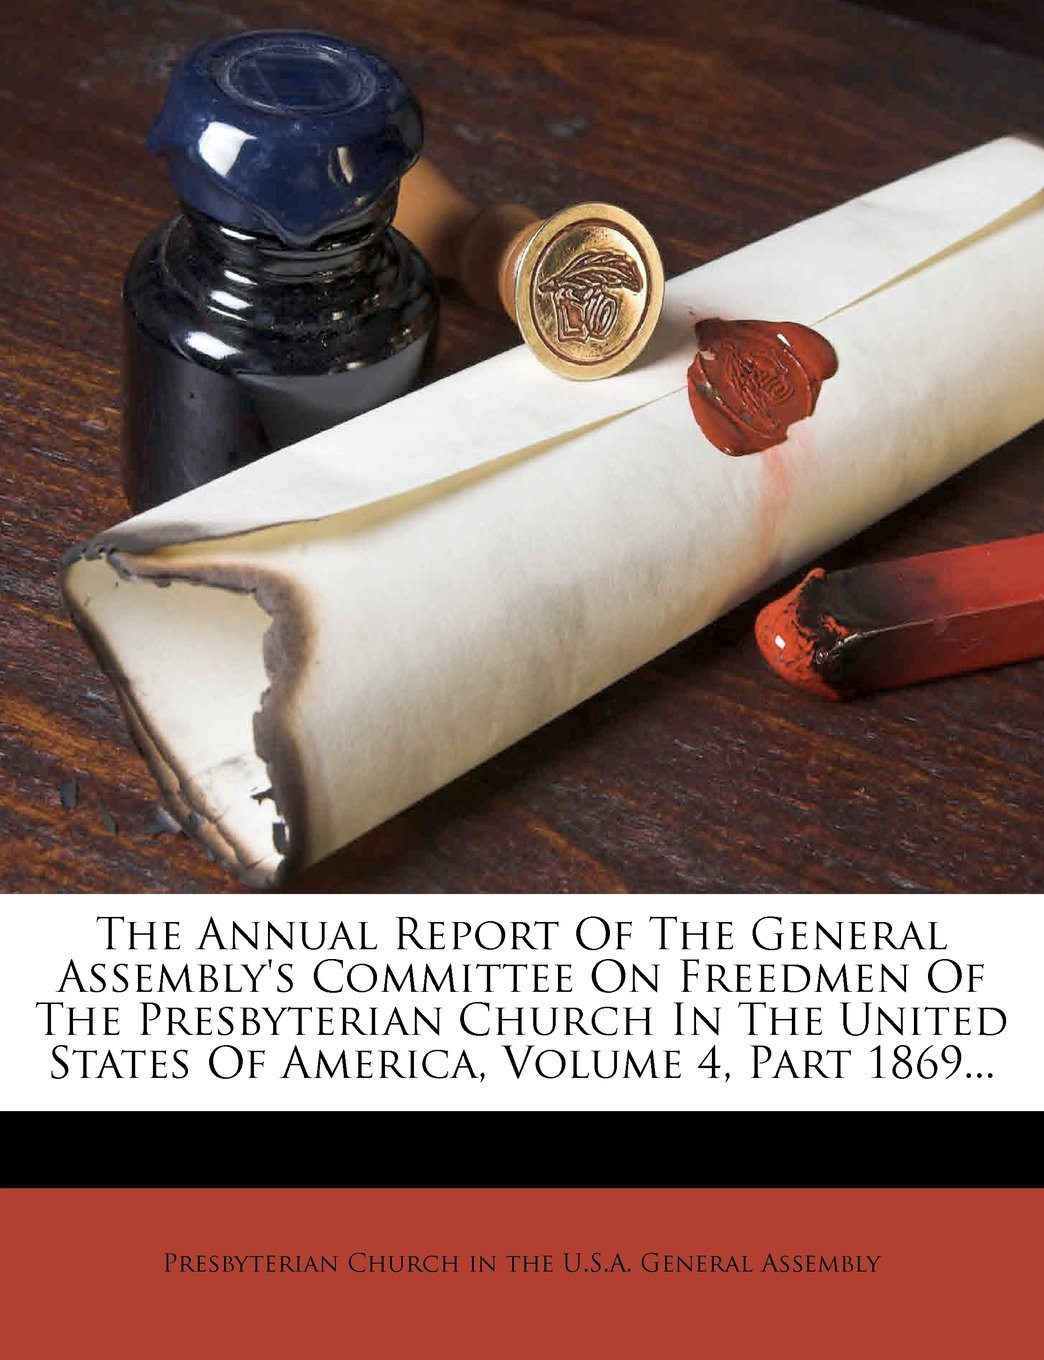 Download The Annual Report Of The General Assembly's Committee On Freedmen Of The Presbyterian Church In The United States Of America, Volume 4, Part 1869... pdf epub